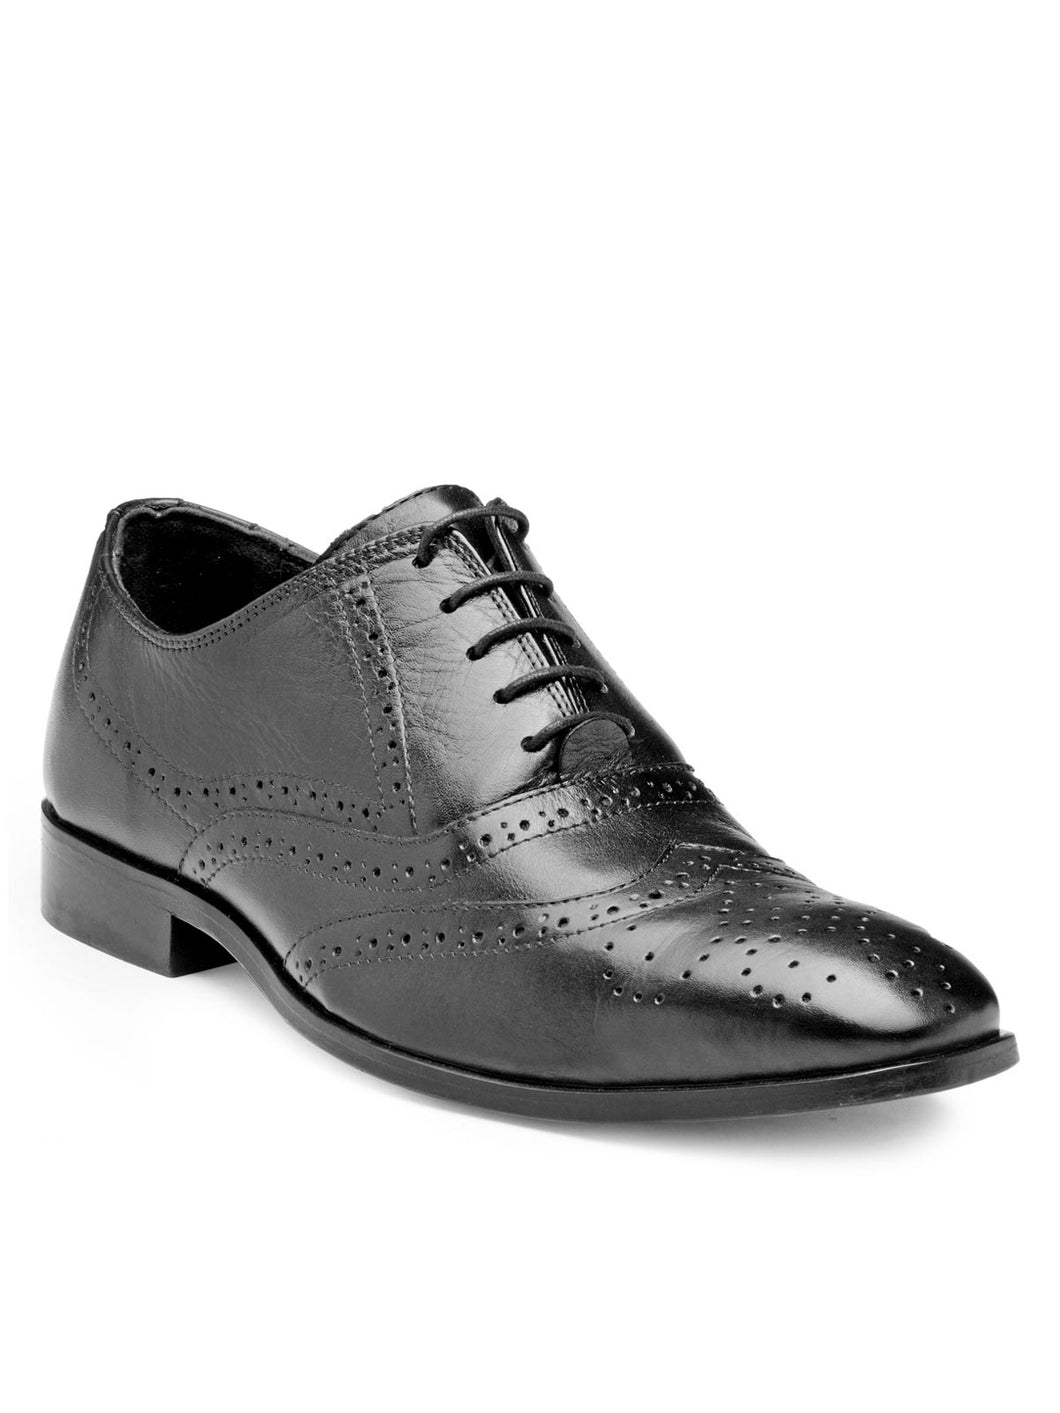 Teakwood Genuine Leather Oxford Shoes Shoes